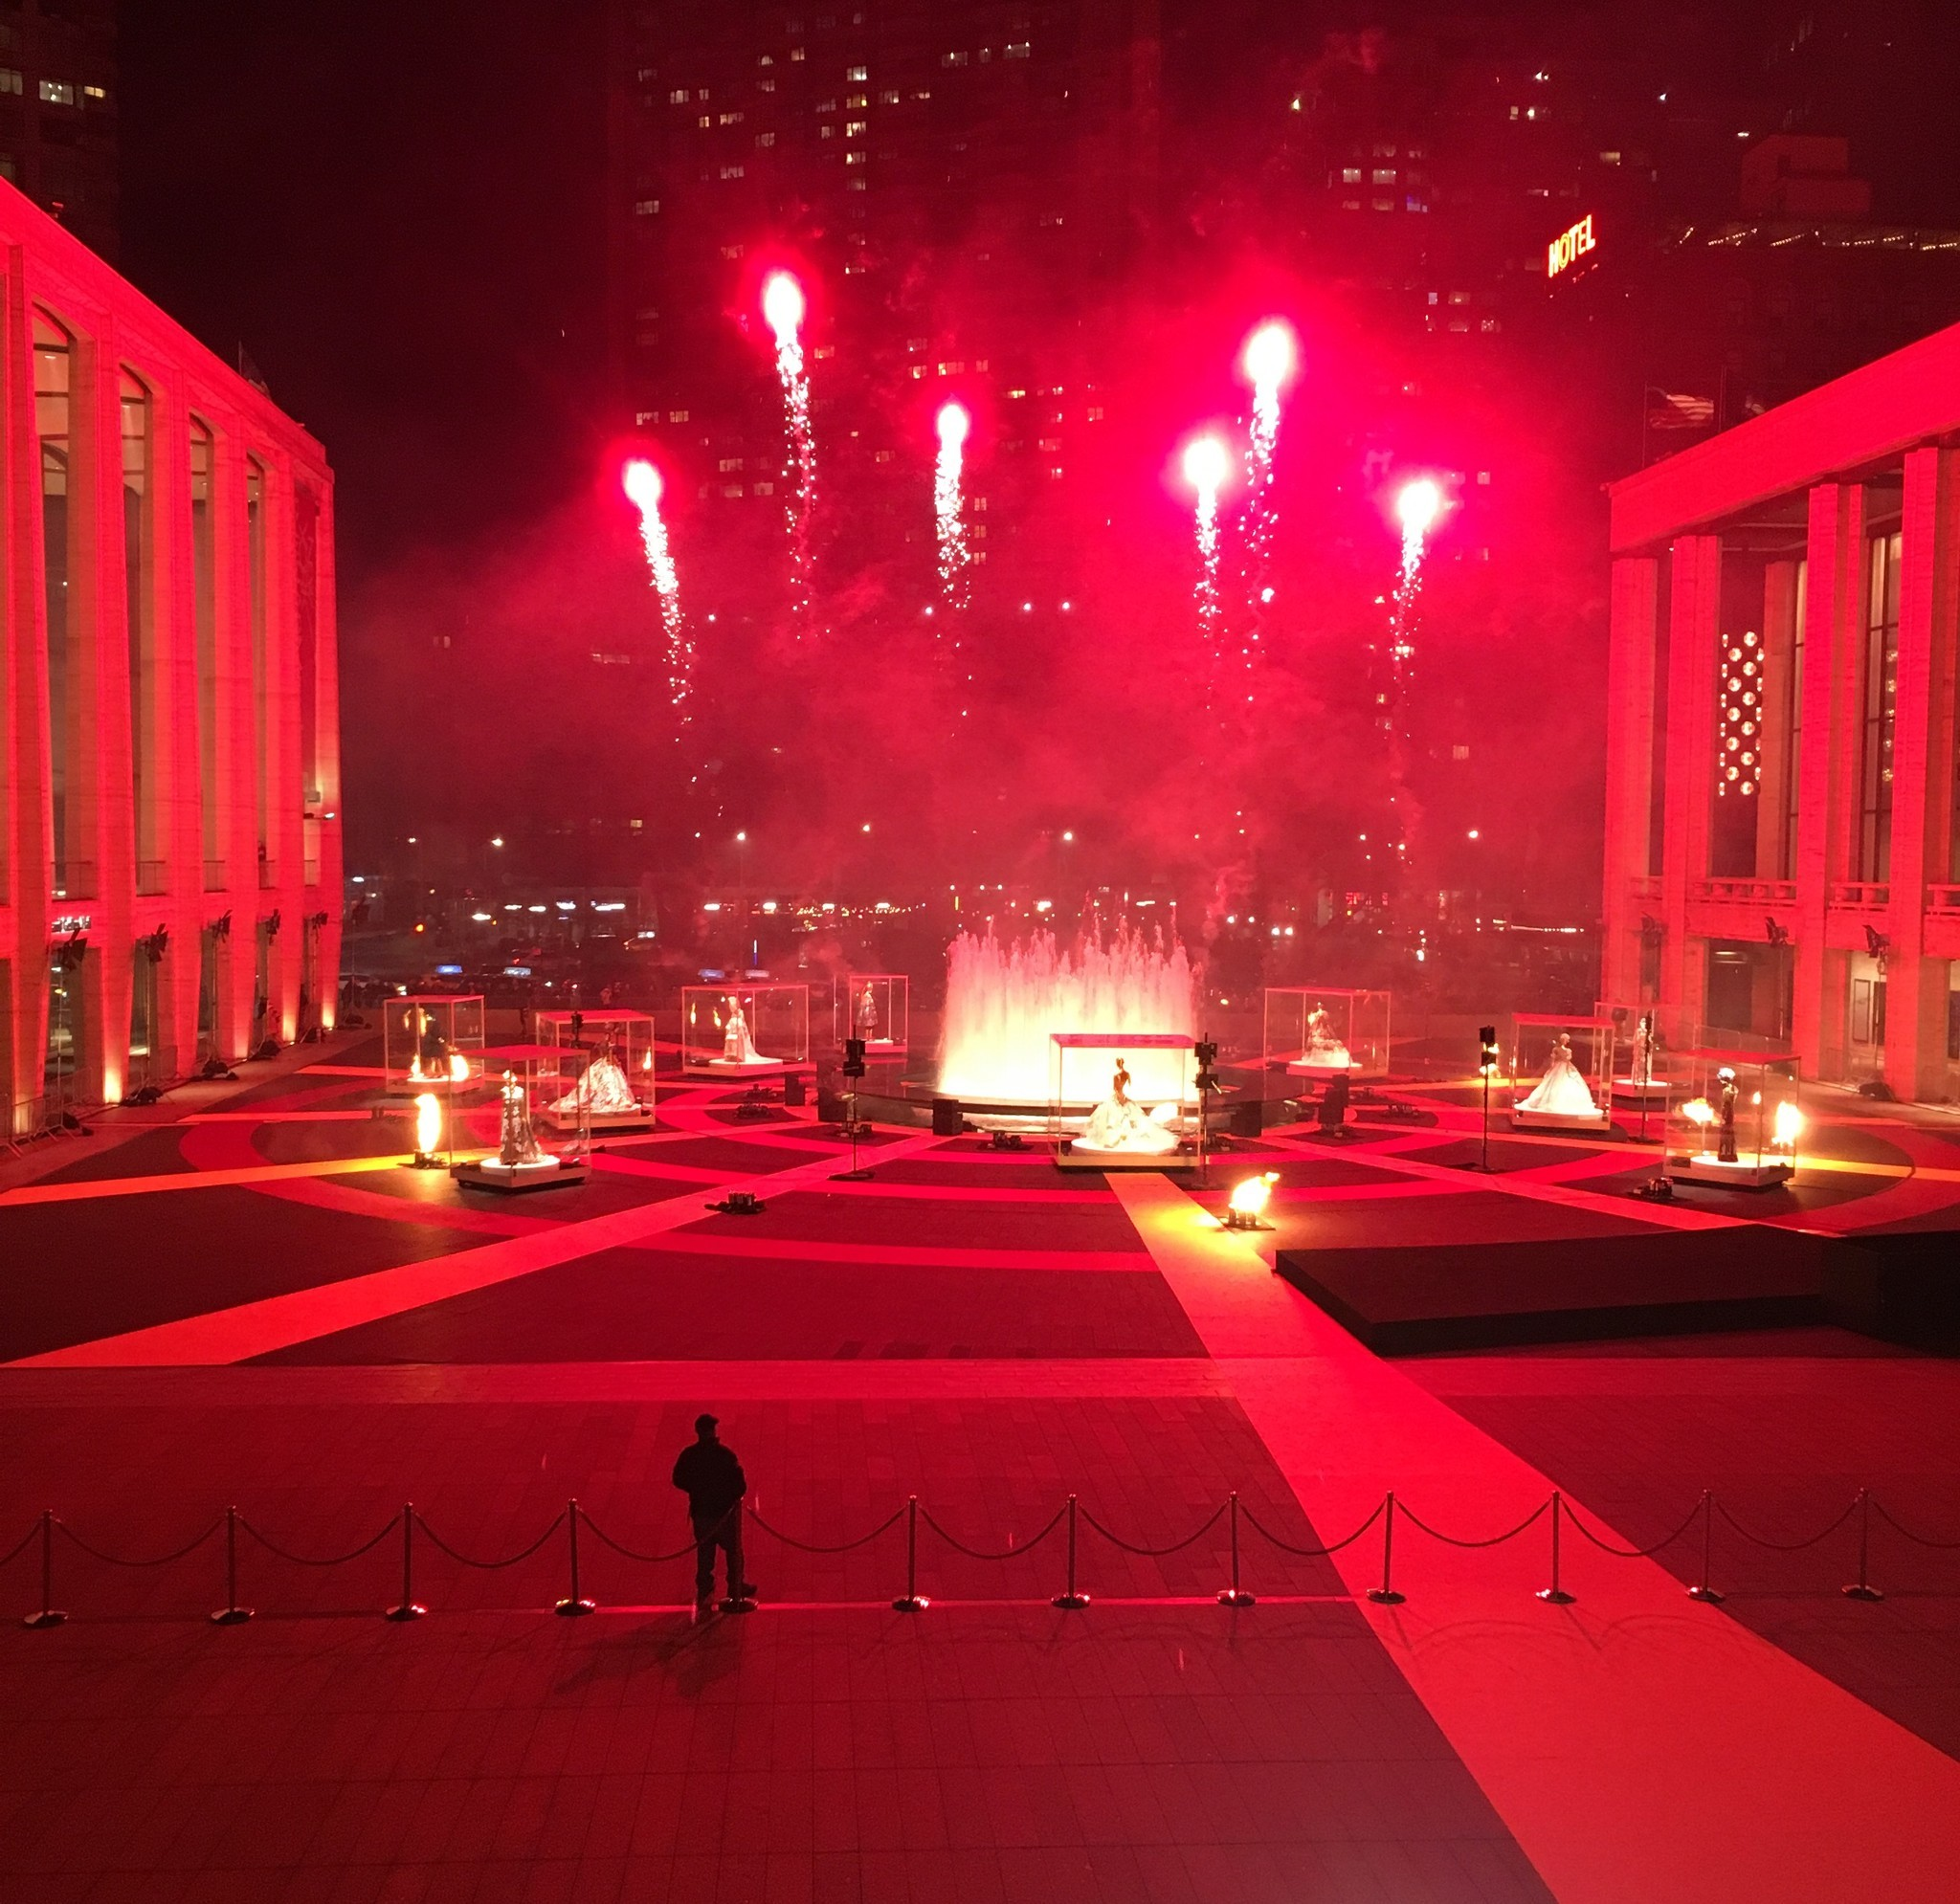 After Dolce & Gabbana's Alta Moda show, clients and guests of the brand get to watch a fireworks display outside the Metropolitan Opera at Lincoln Center in New York.